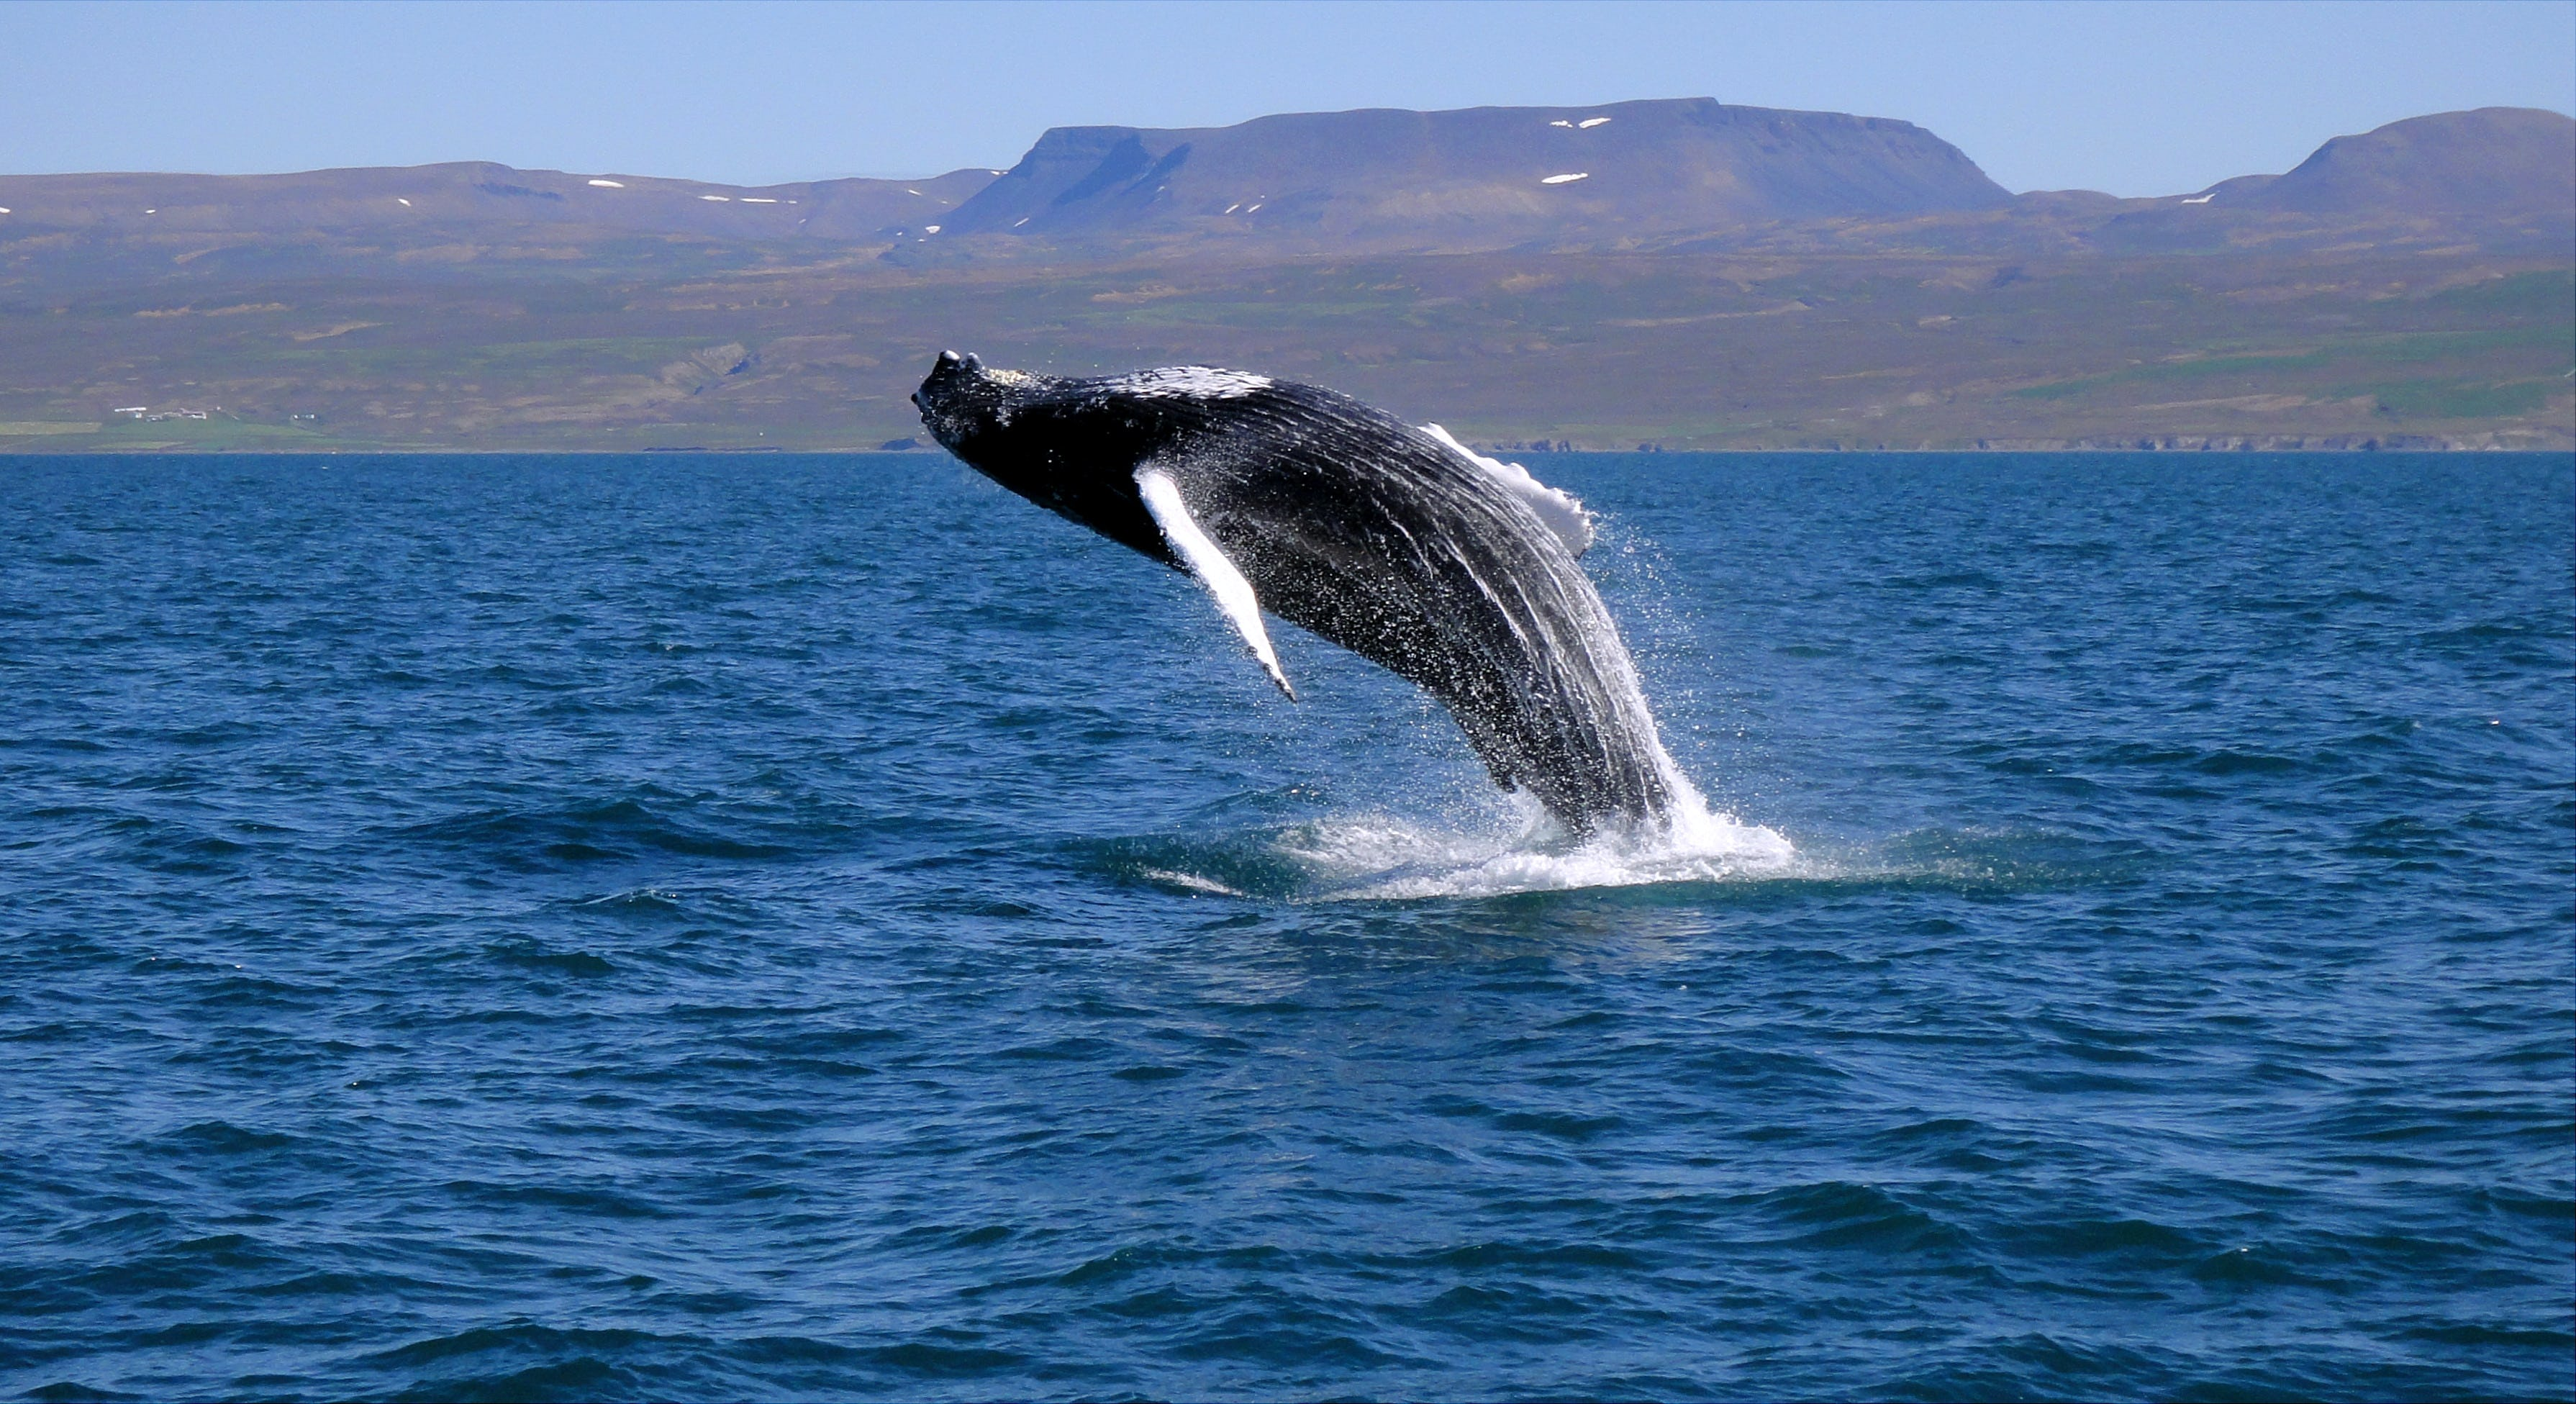 Whales regurarly breach the coastal waters around Iceland, creating stunning visual displays.